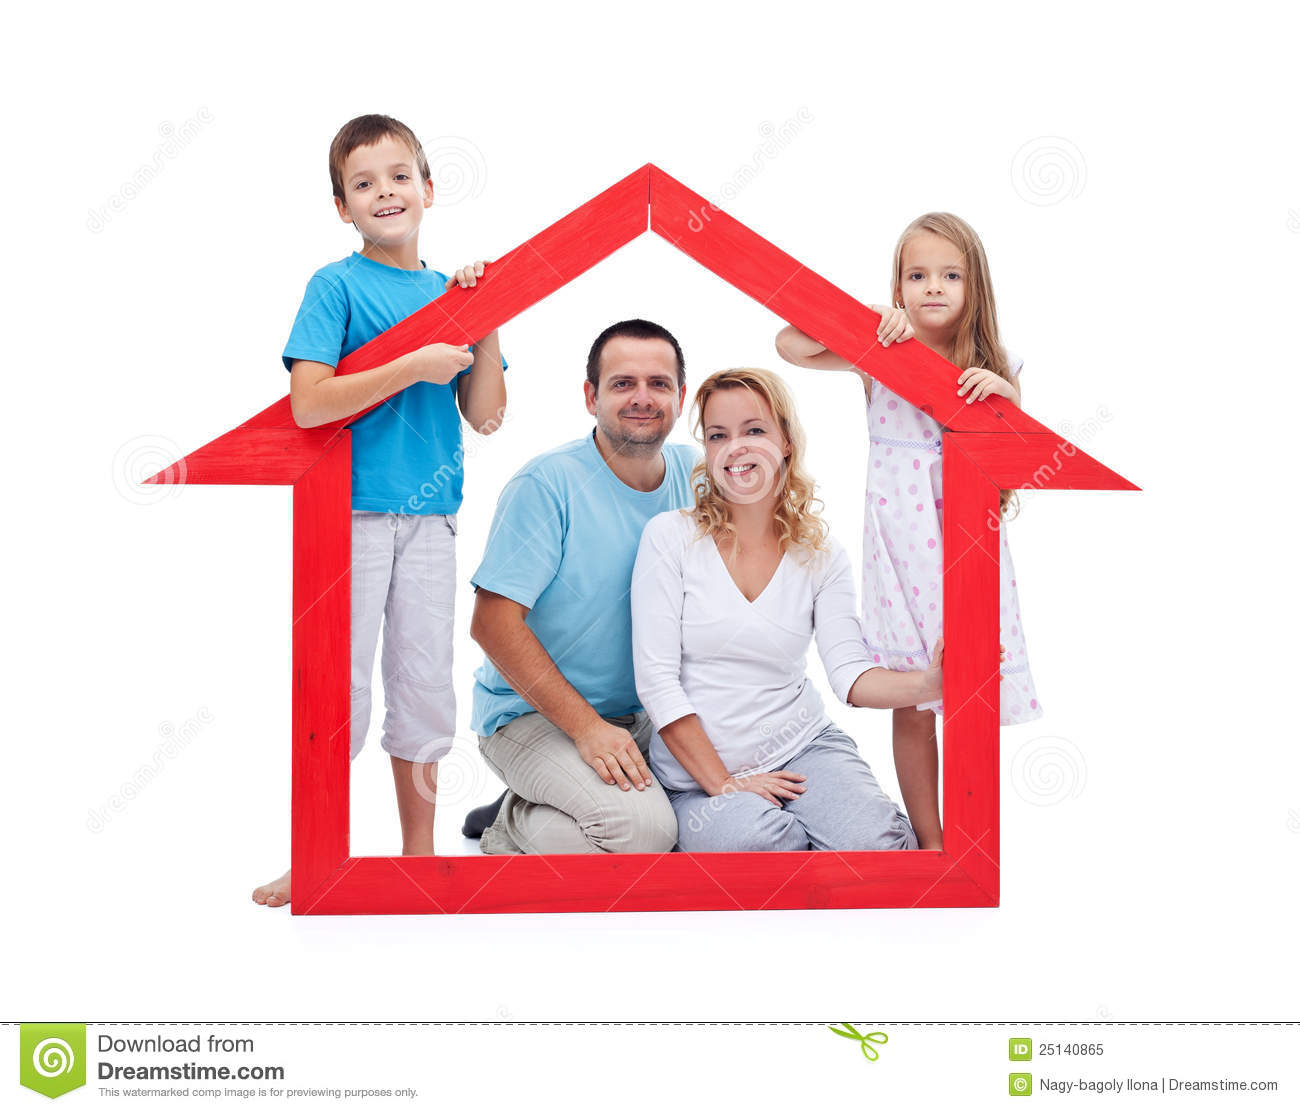 Mortgage for a family with two children in 2019 100